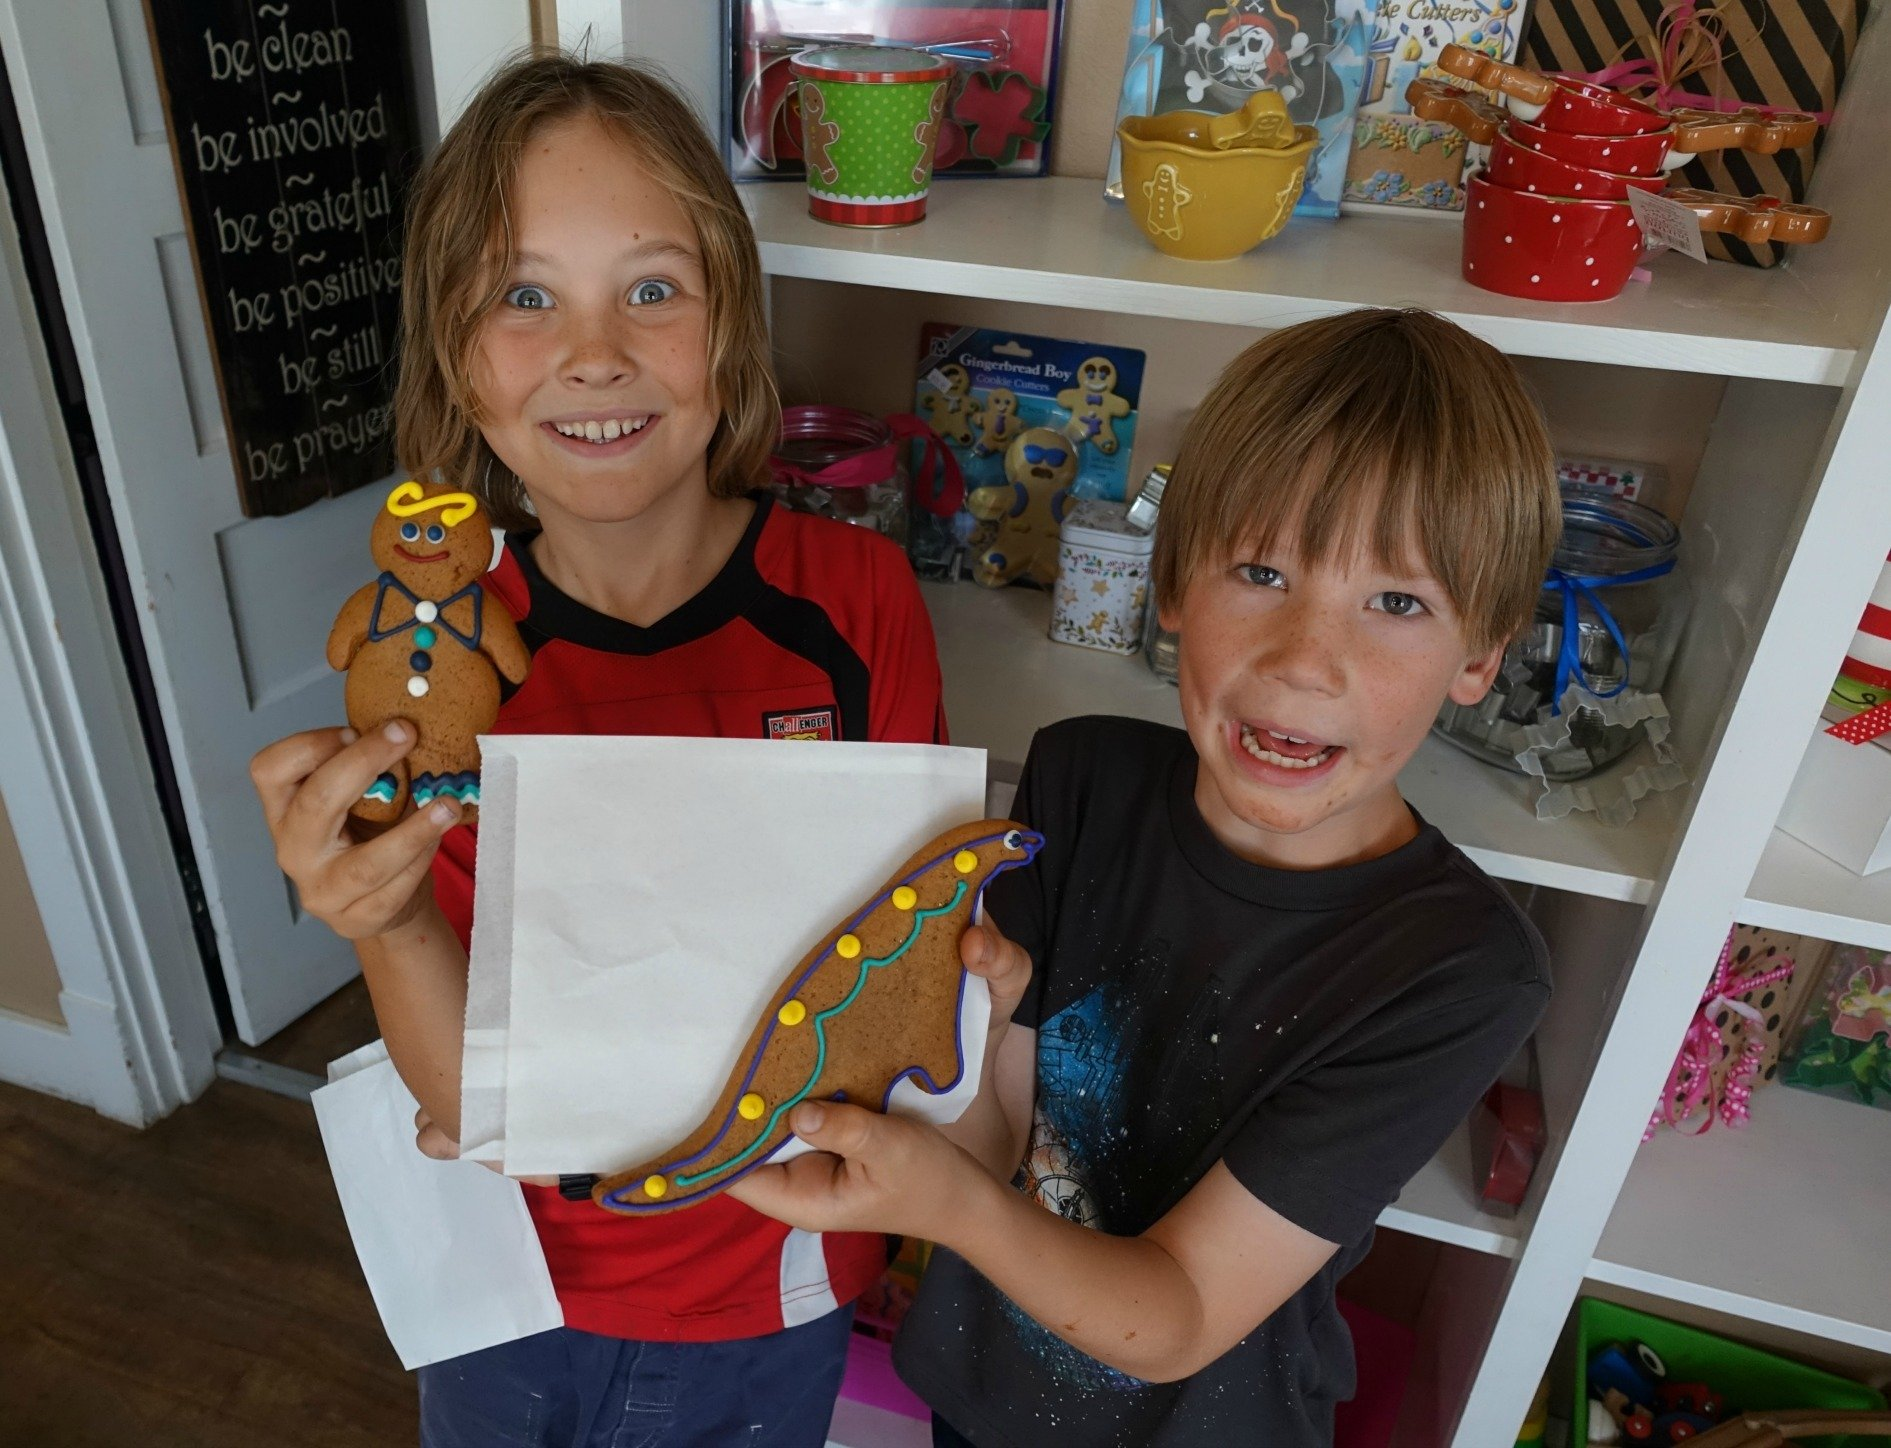 attractions in Washington state - Gingerbread Factory in Leavenworth Washington. Things to do with kids in Washington